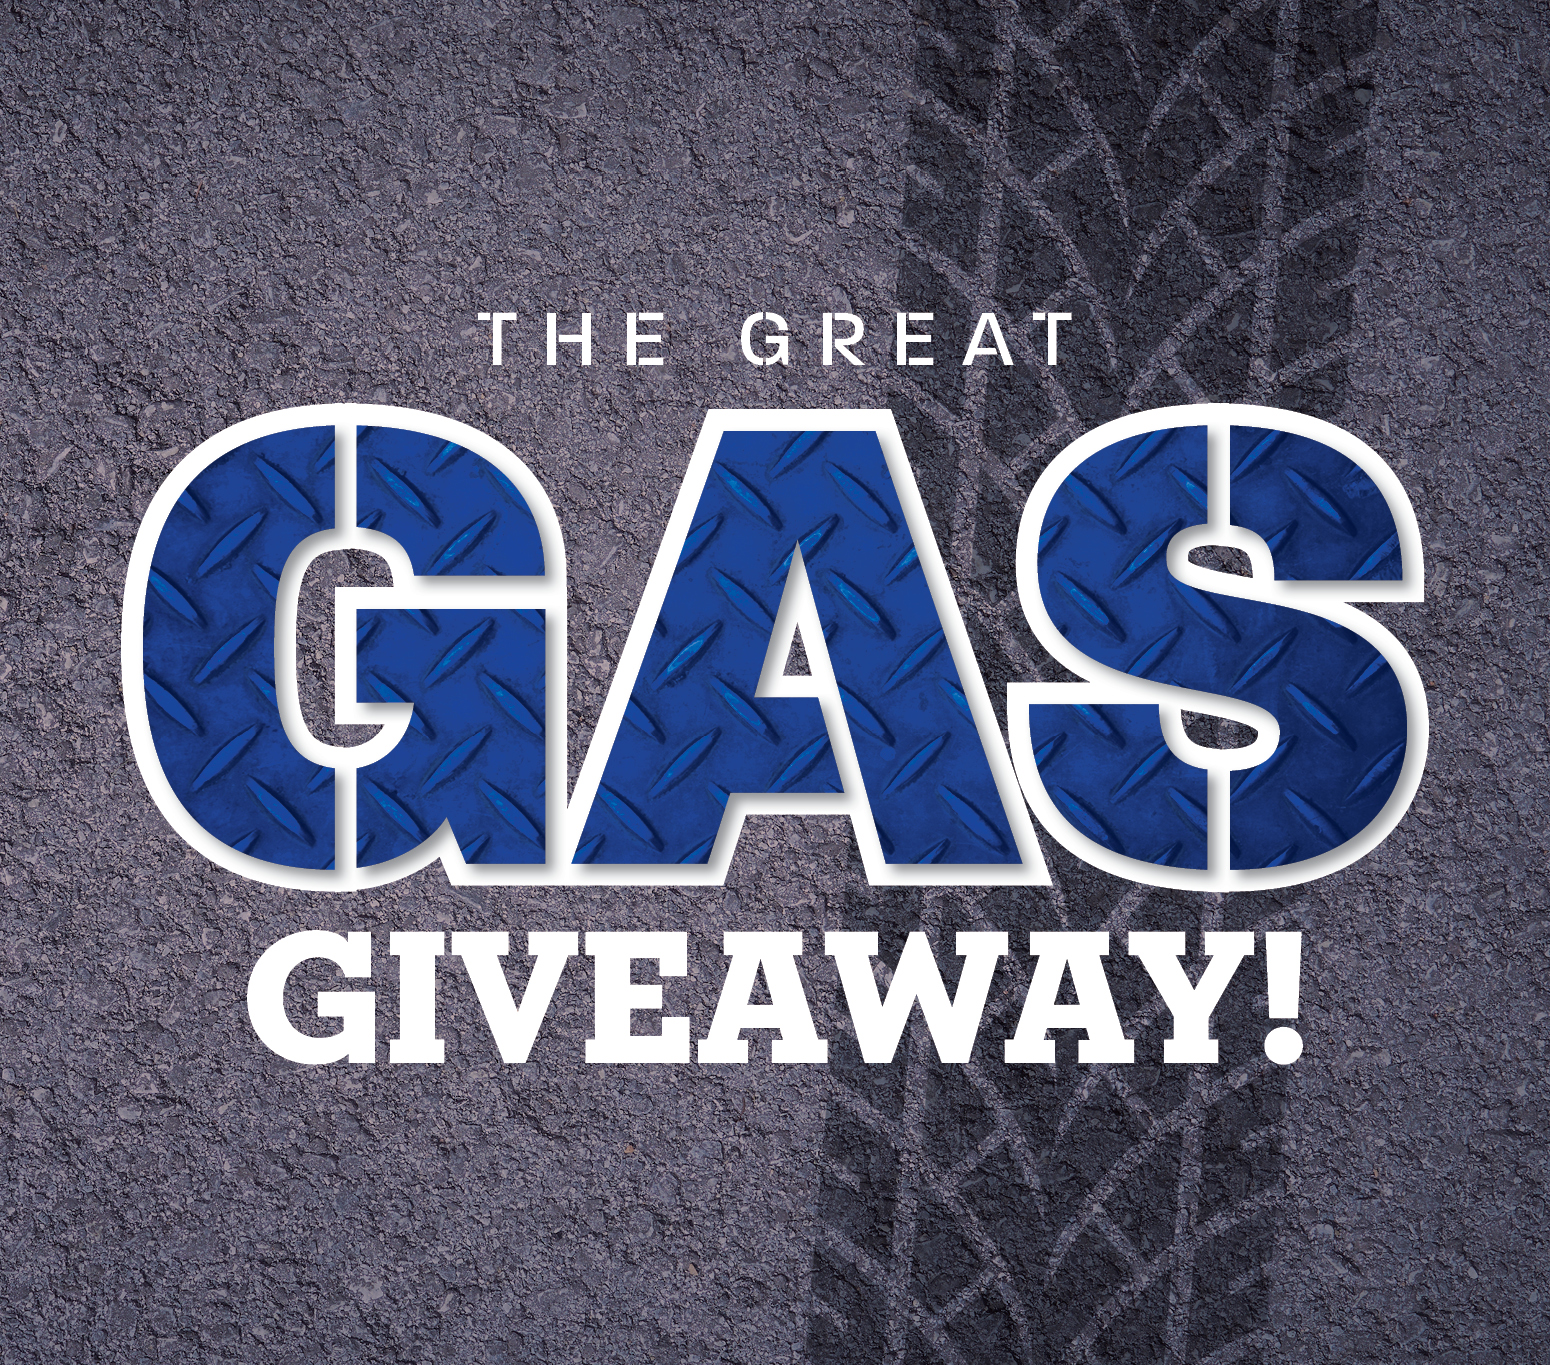 Great Gas Giveaway